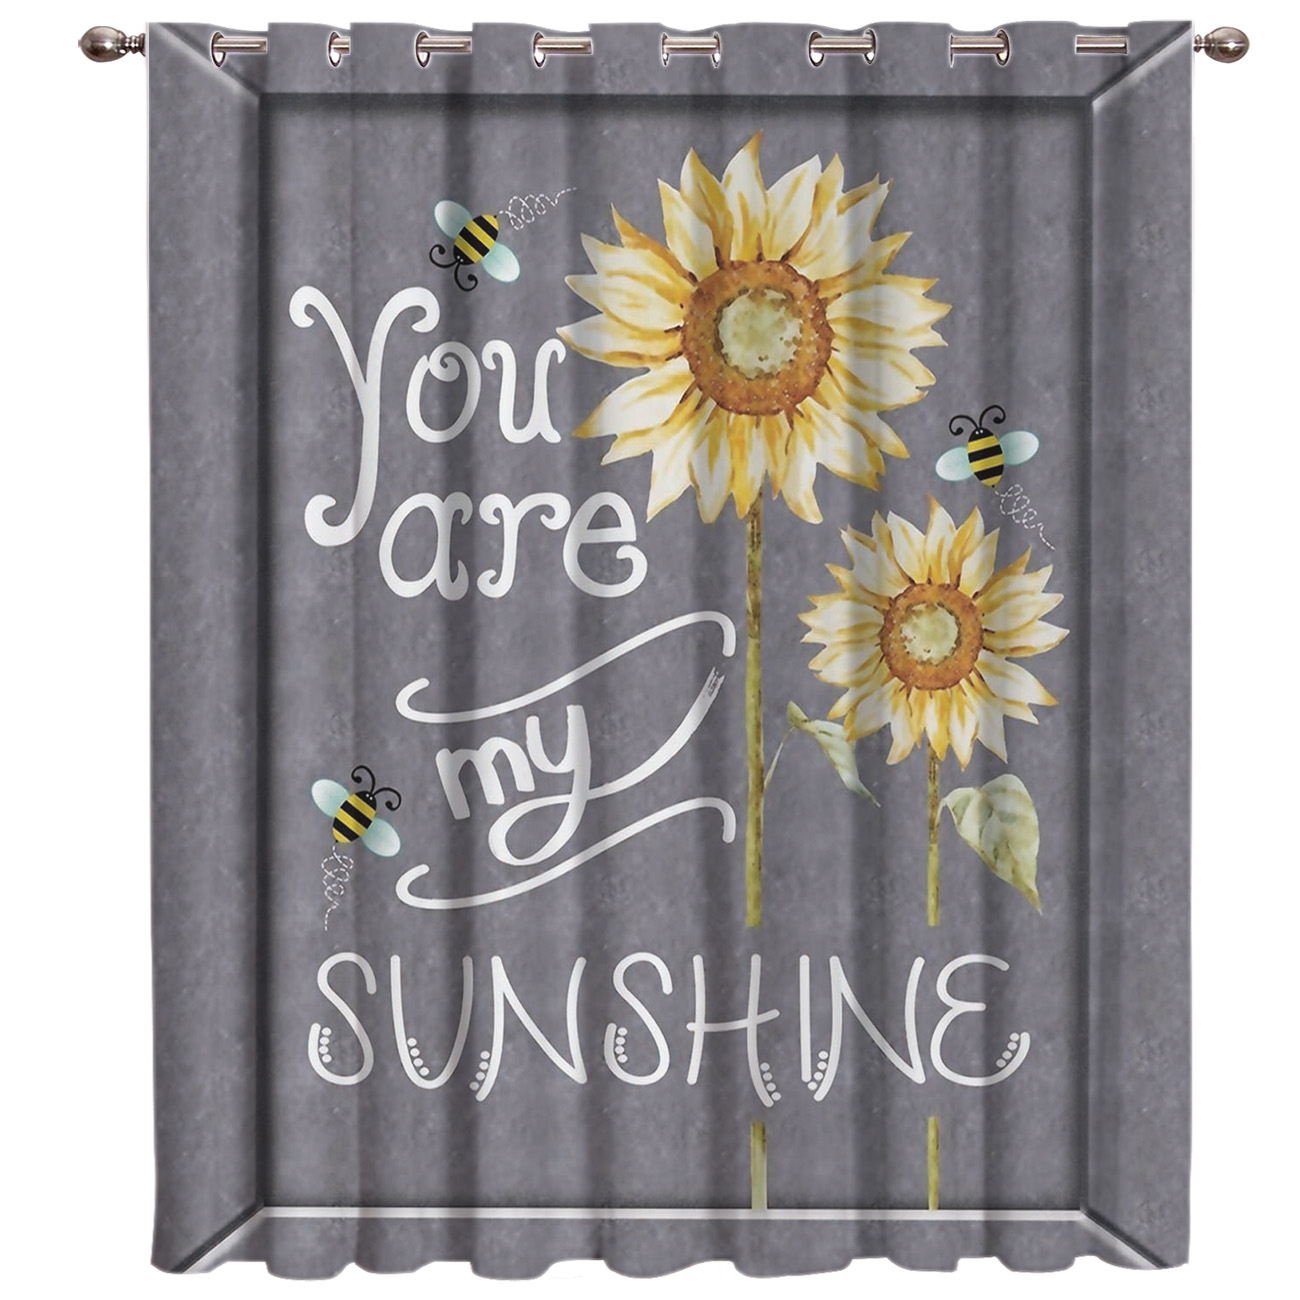 You Are My Sunshine Sunflower Window Treatments Curtains Valance Decor Bathroom Bedroom Swag Curtain Panels With Grommets